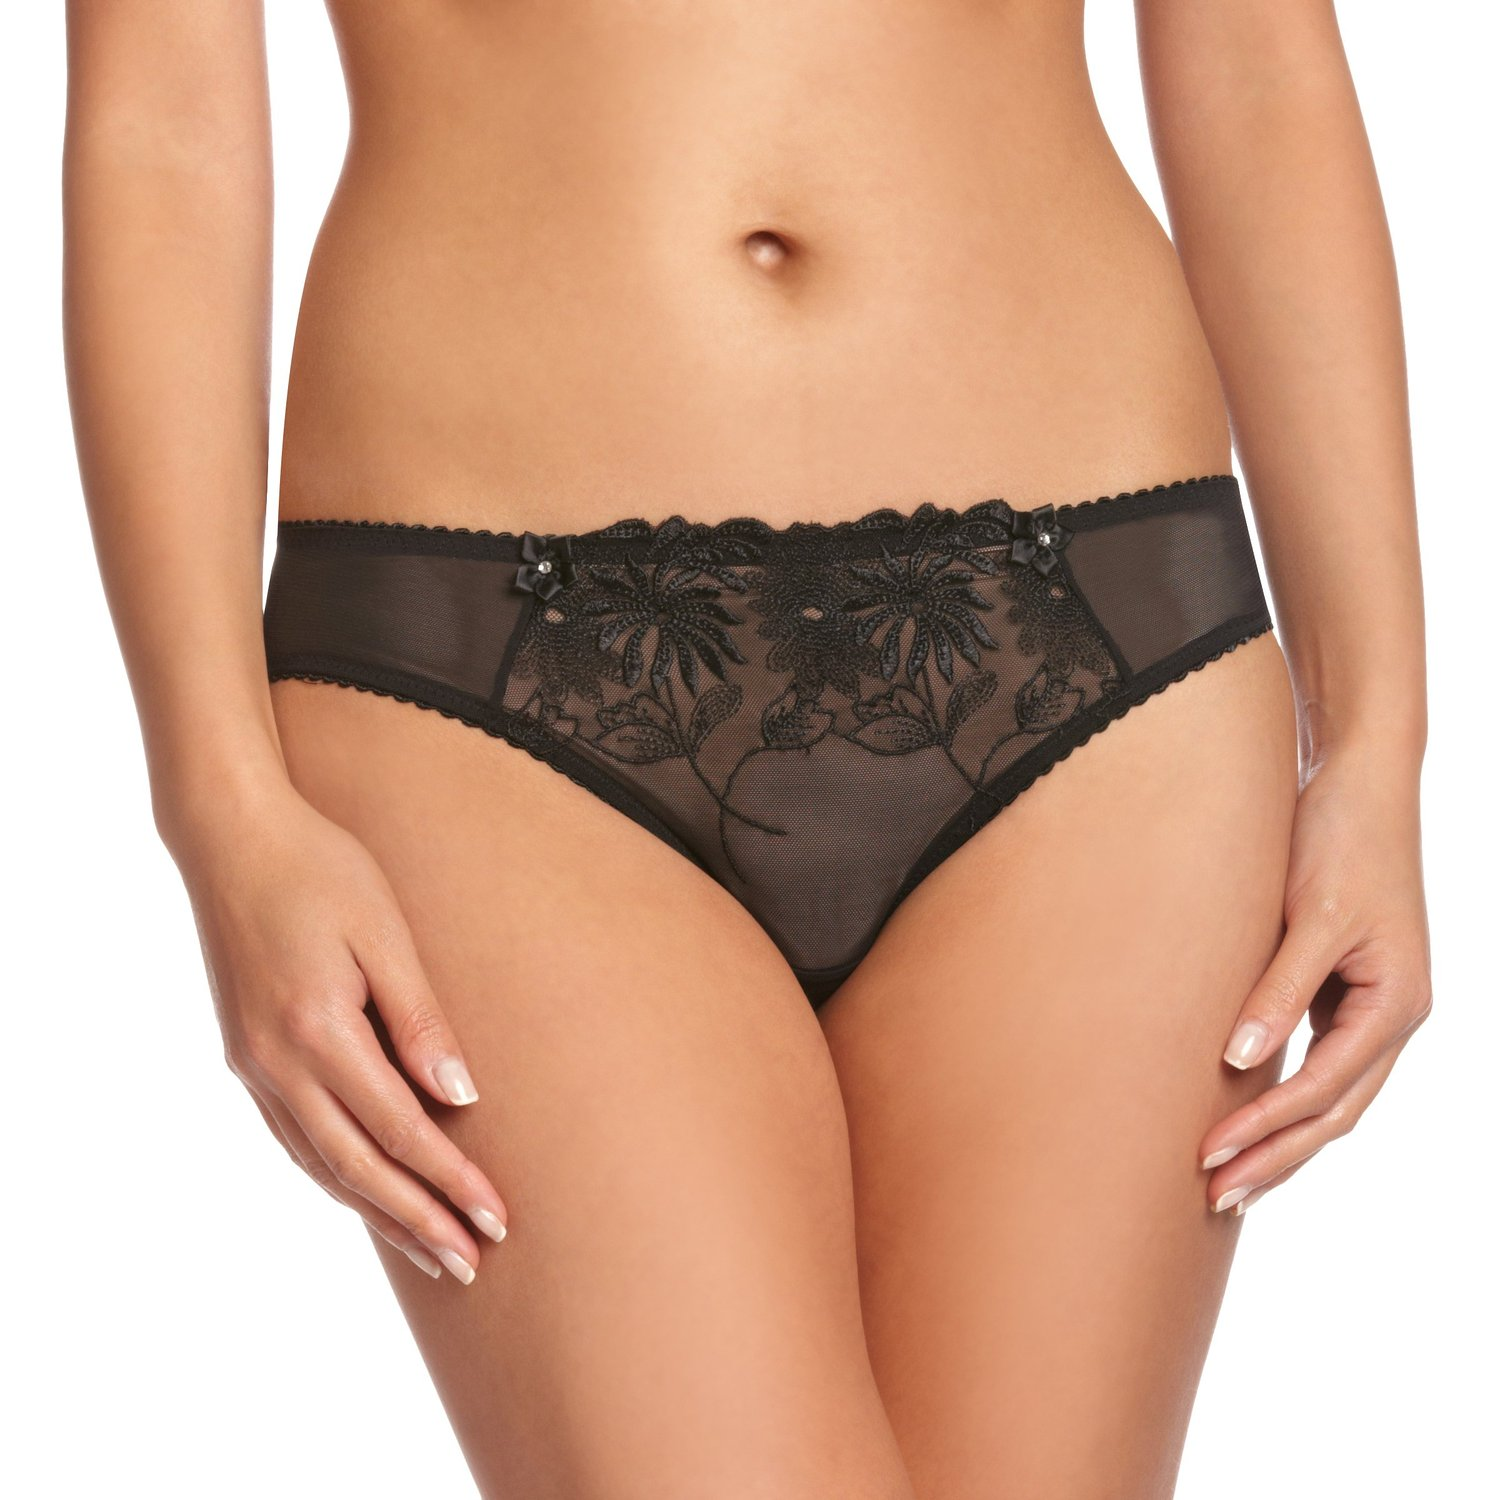 35a11b514b51 click image to enlarge. Pour Moi St Tropez Mid Rise Brief 7713 Soft Semi  Sheer Knickers ...